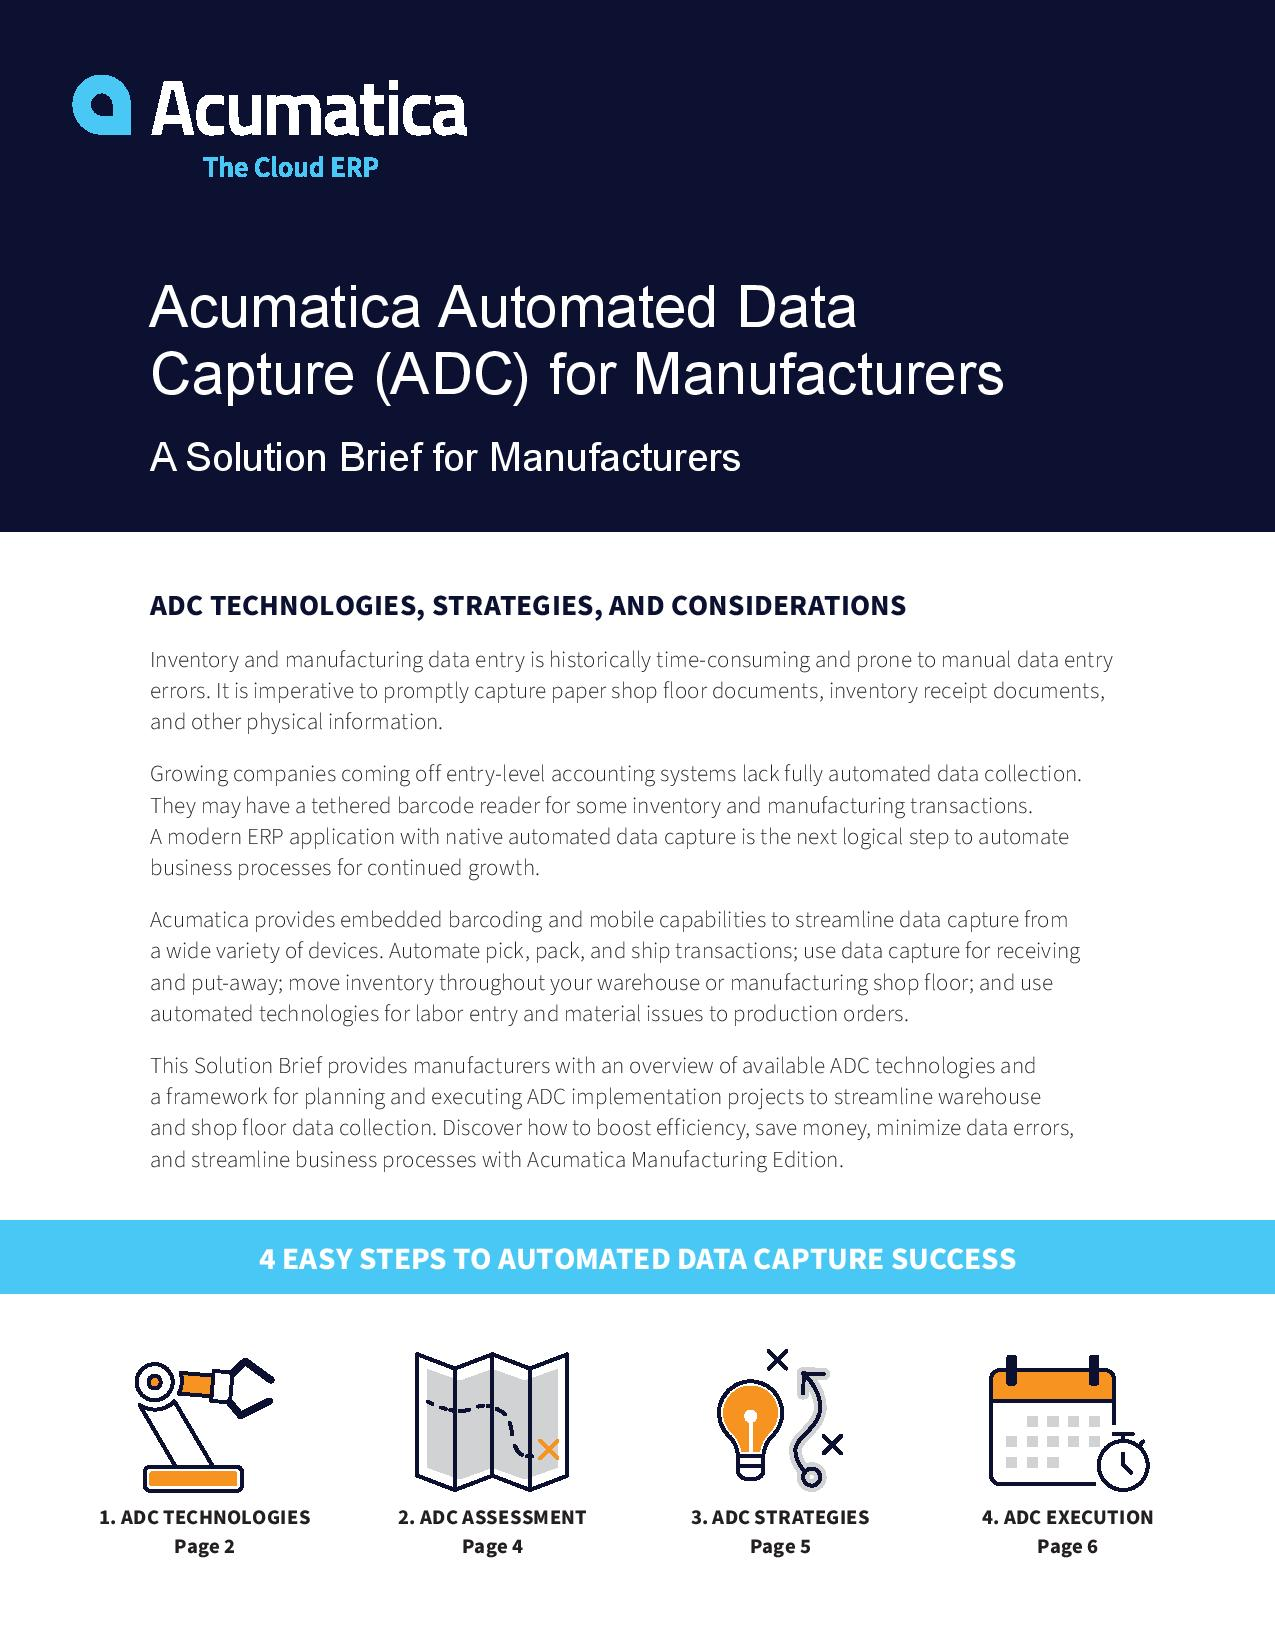 What Every Manufacturer Should Know About Automated Data Capture, page 0